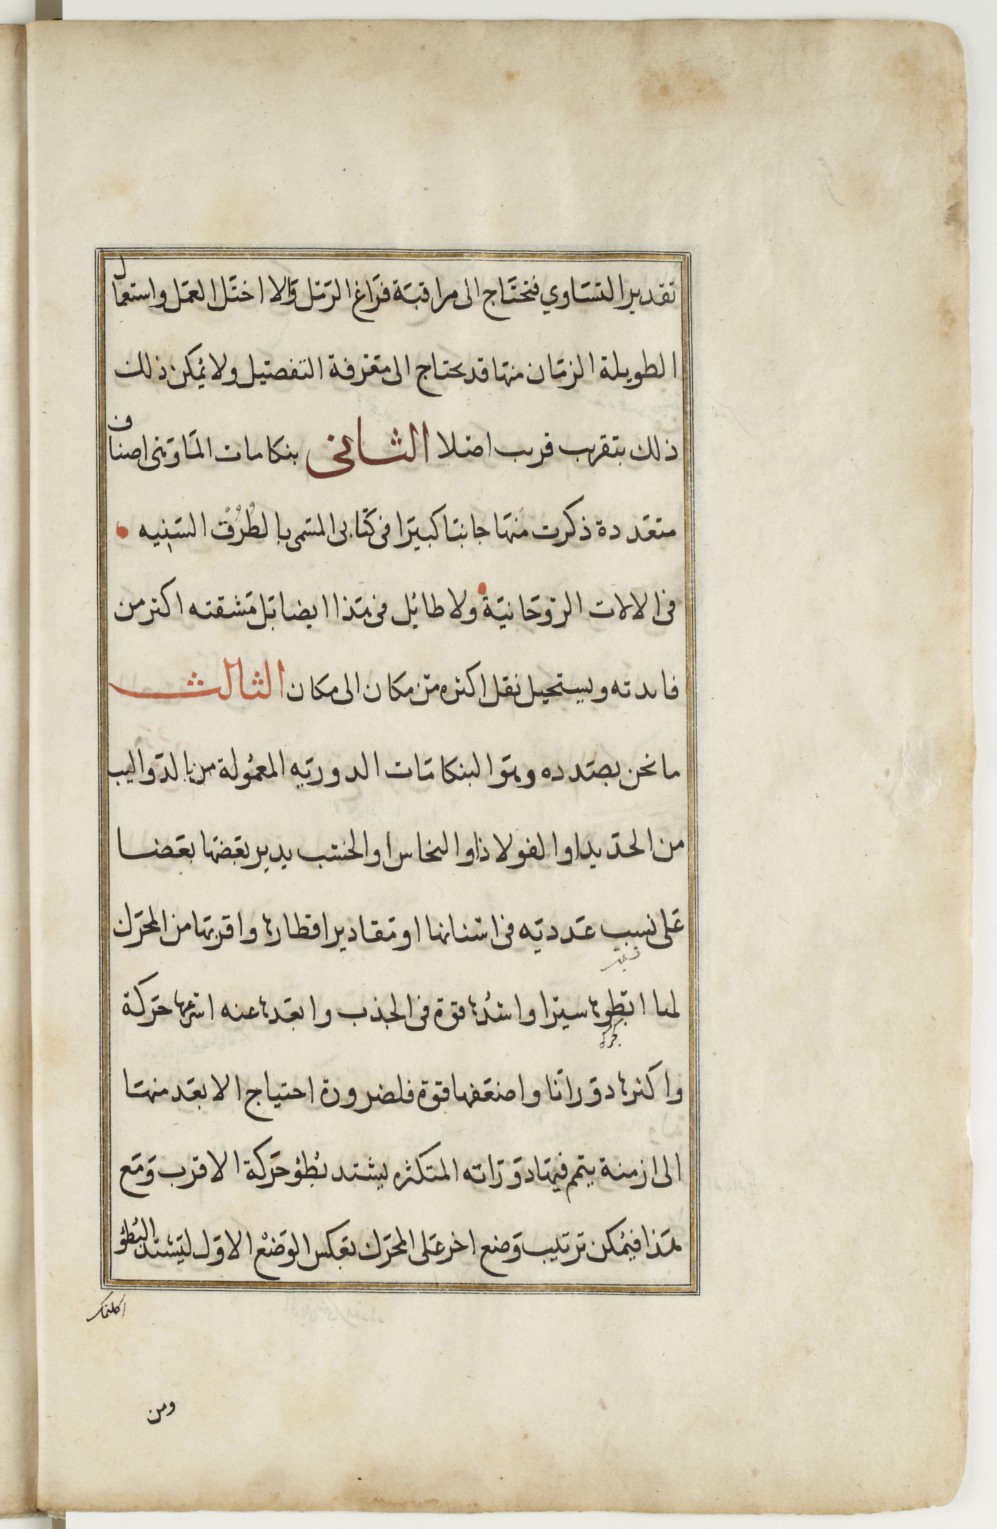 Arabic manuscript demonstrating various justification techniques.